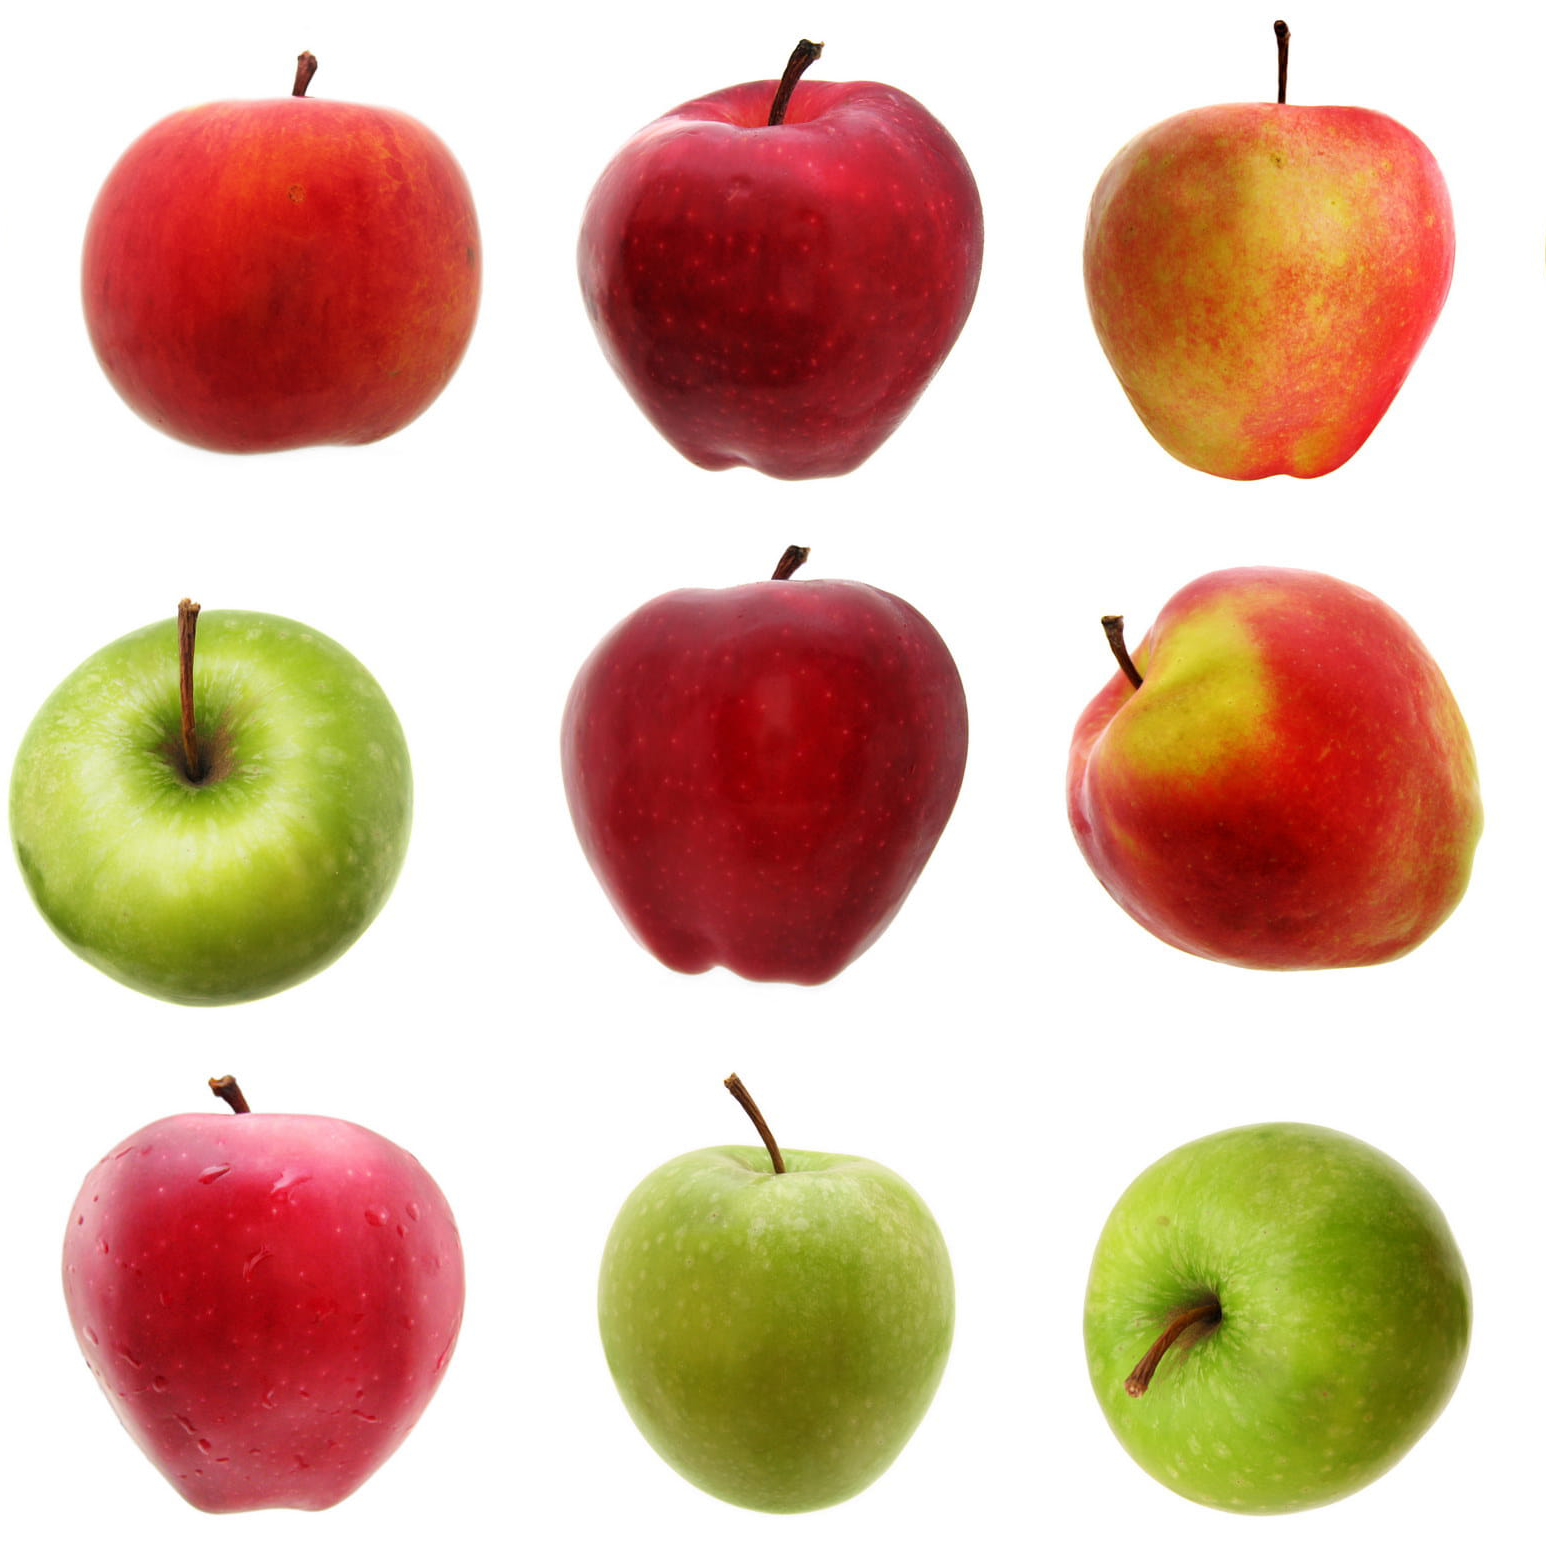 nine apples of various shapes and colors on a white background